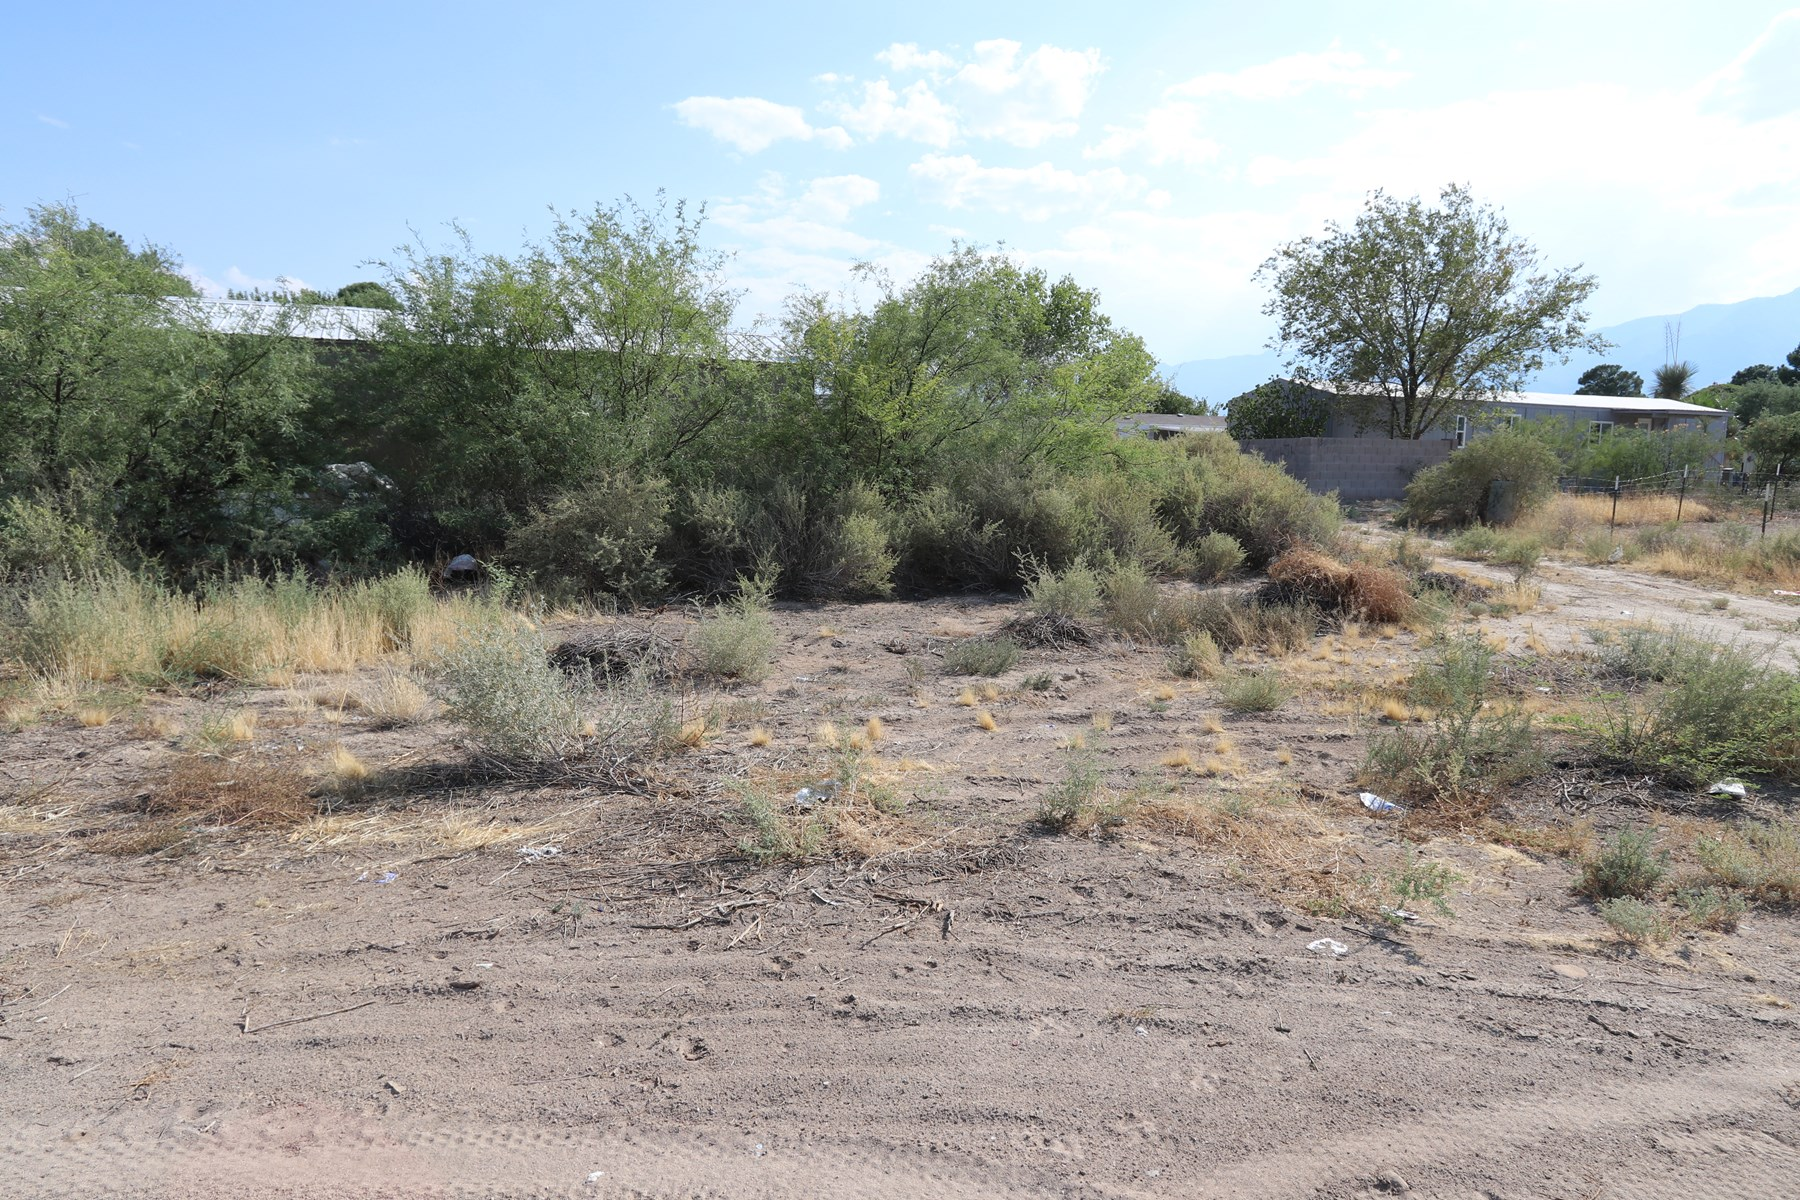 Mobile home lot just outside of Safford, AZ